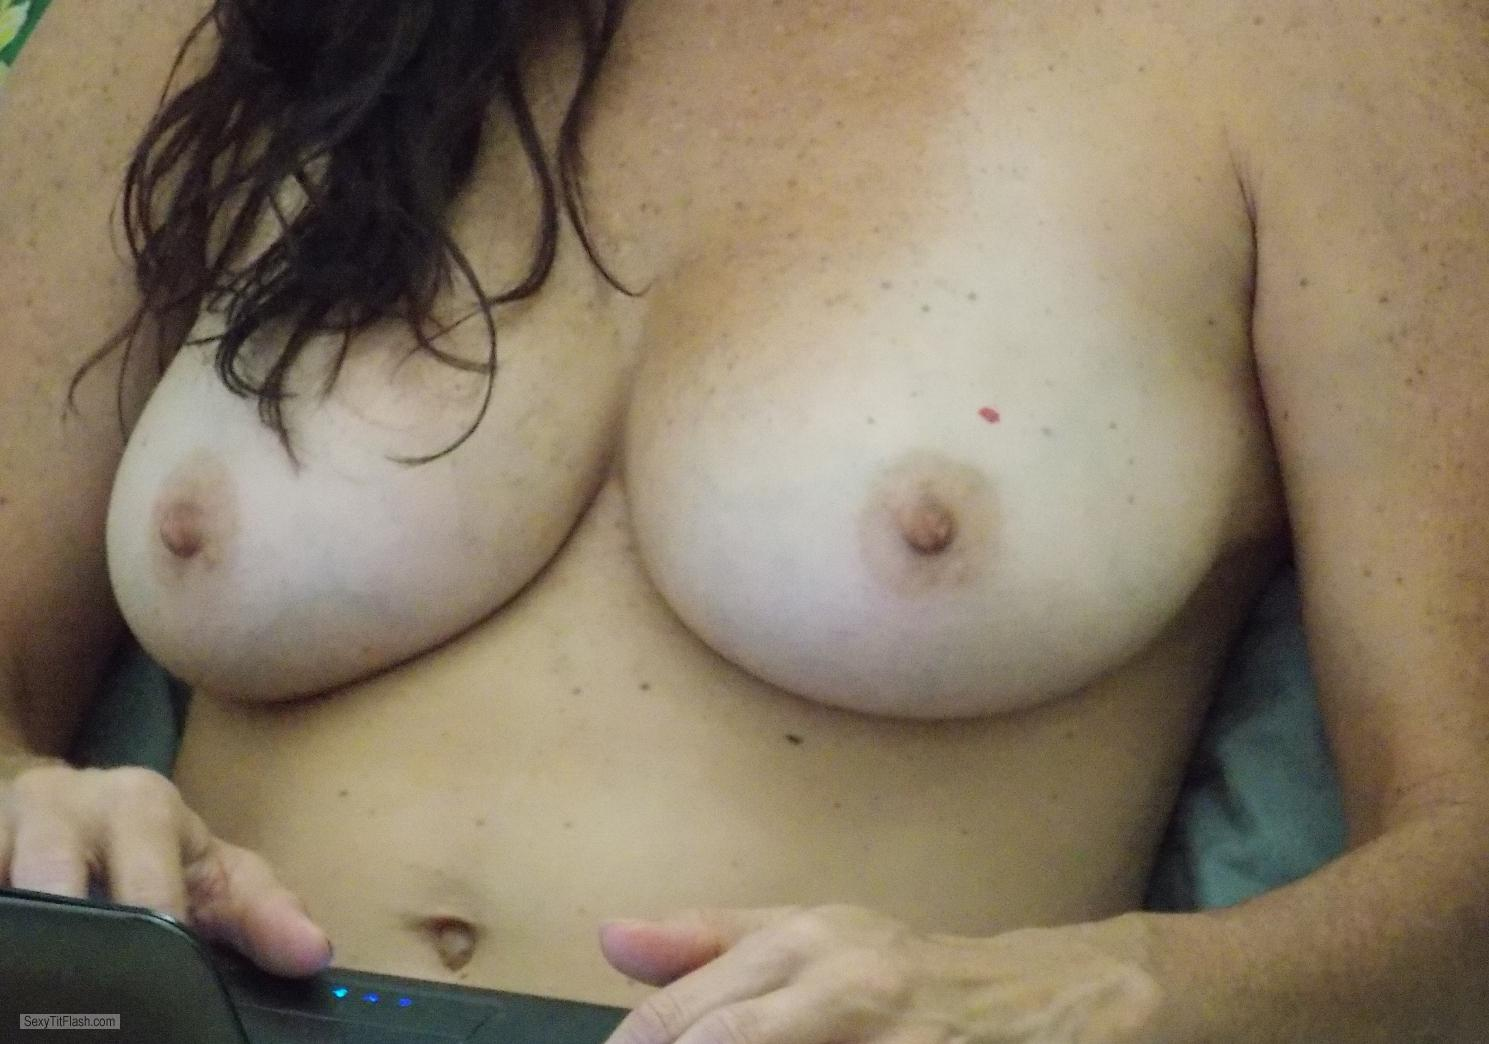 Medium Tits Of My Wife Fernanda From Brazil